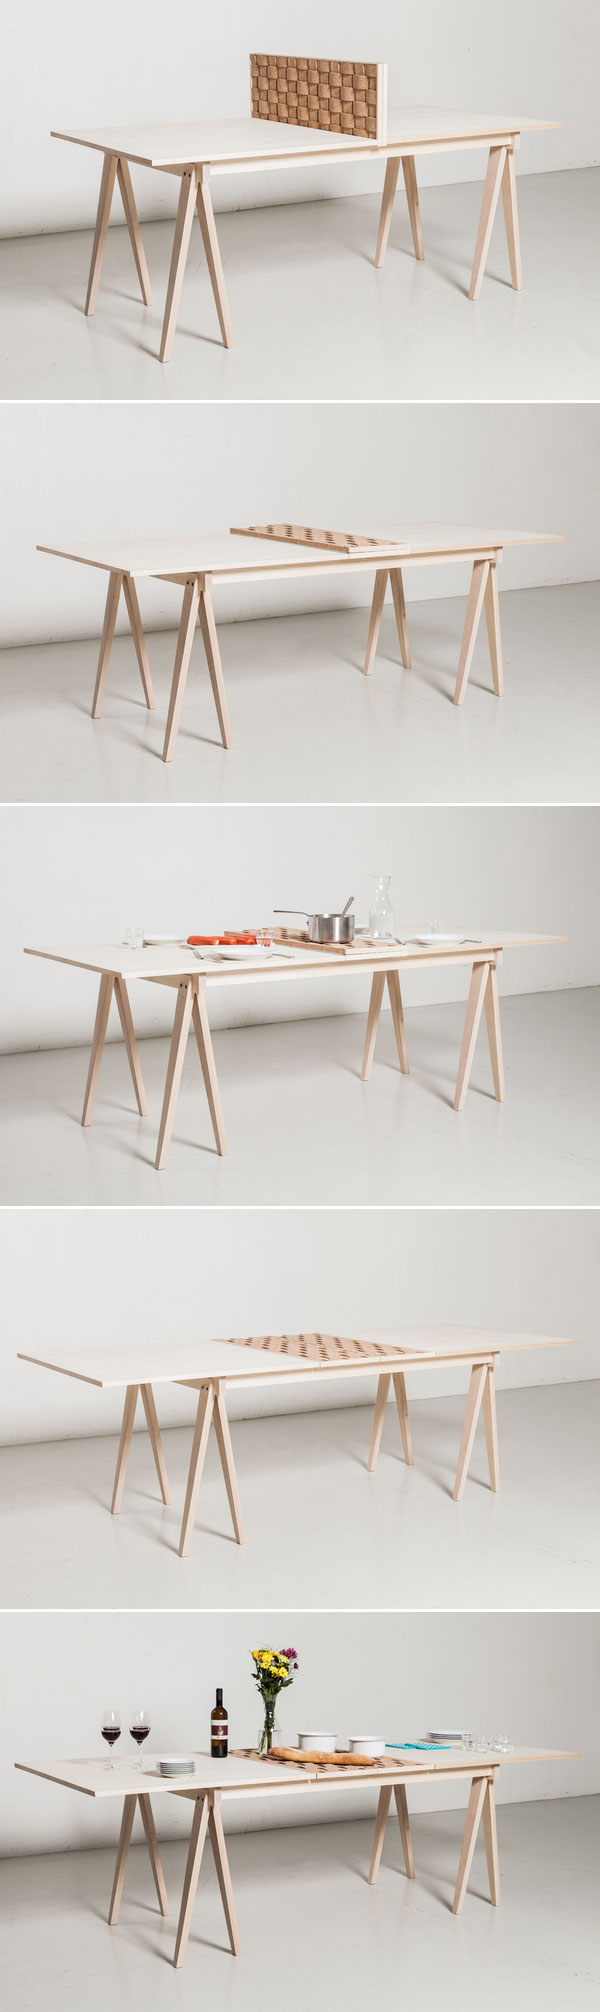 http://cdn.home-designing.com/wp-content/uploads/2014/05/3-Extendable-dining-table.jpg